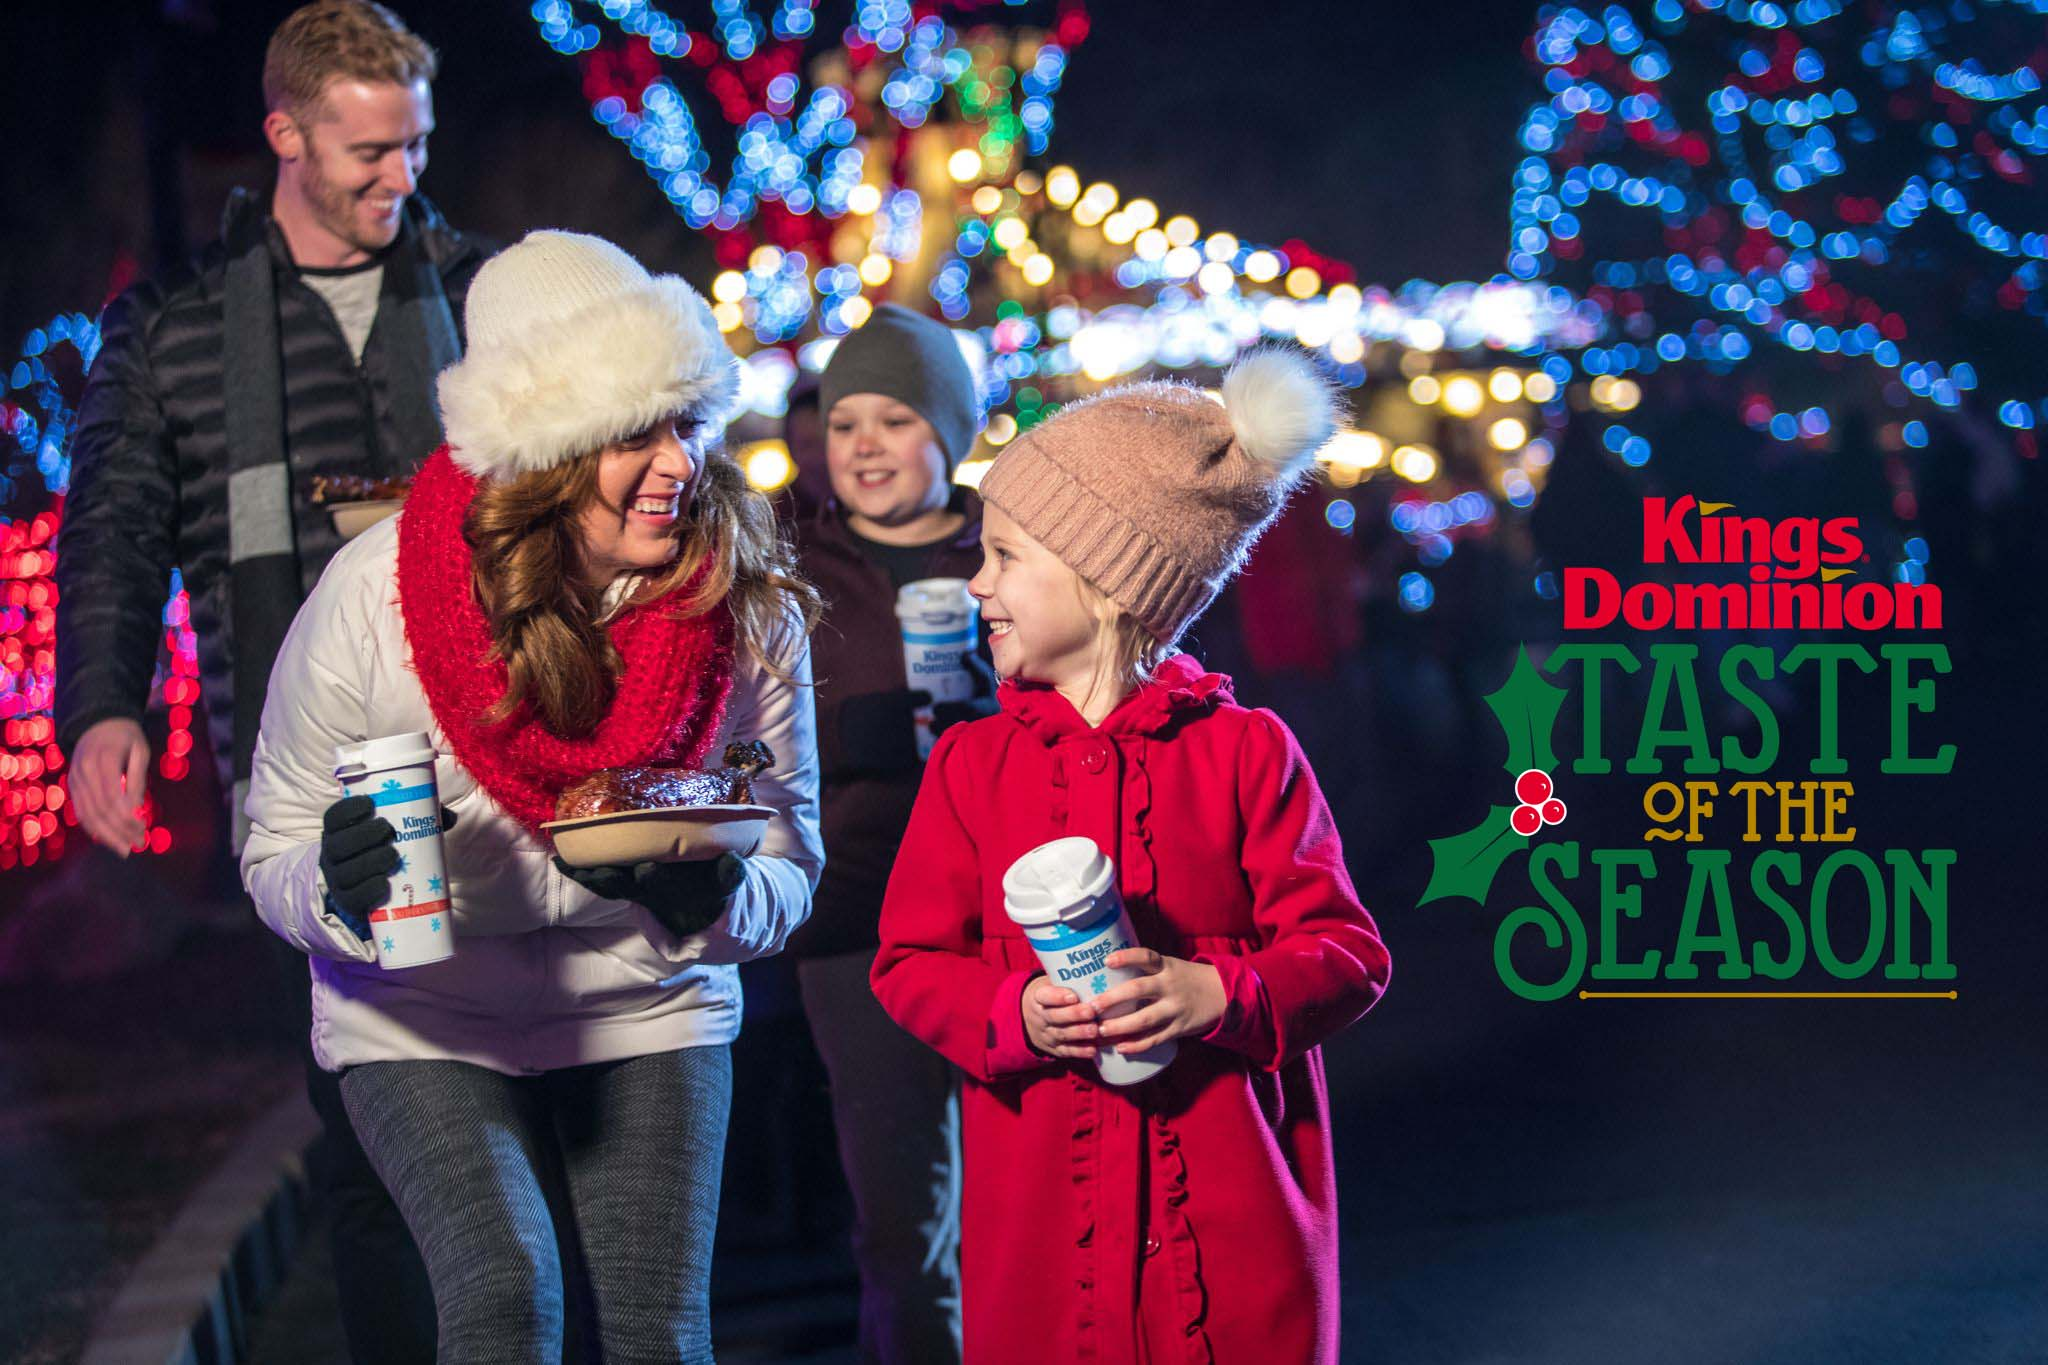 When Does Kings Close On Christmas Eve 2020 Kings Dominion Gets Into the Christmas Spirit with Taste of the